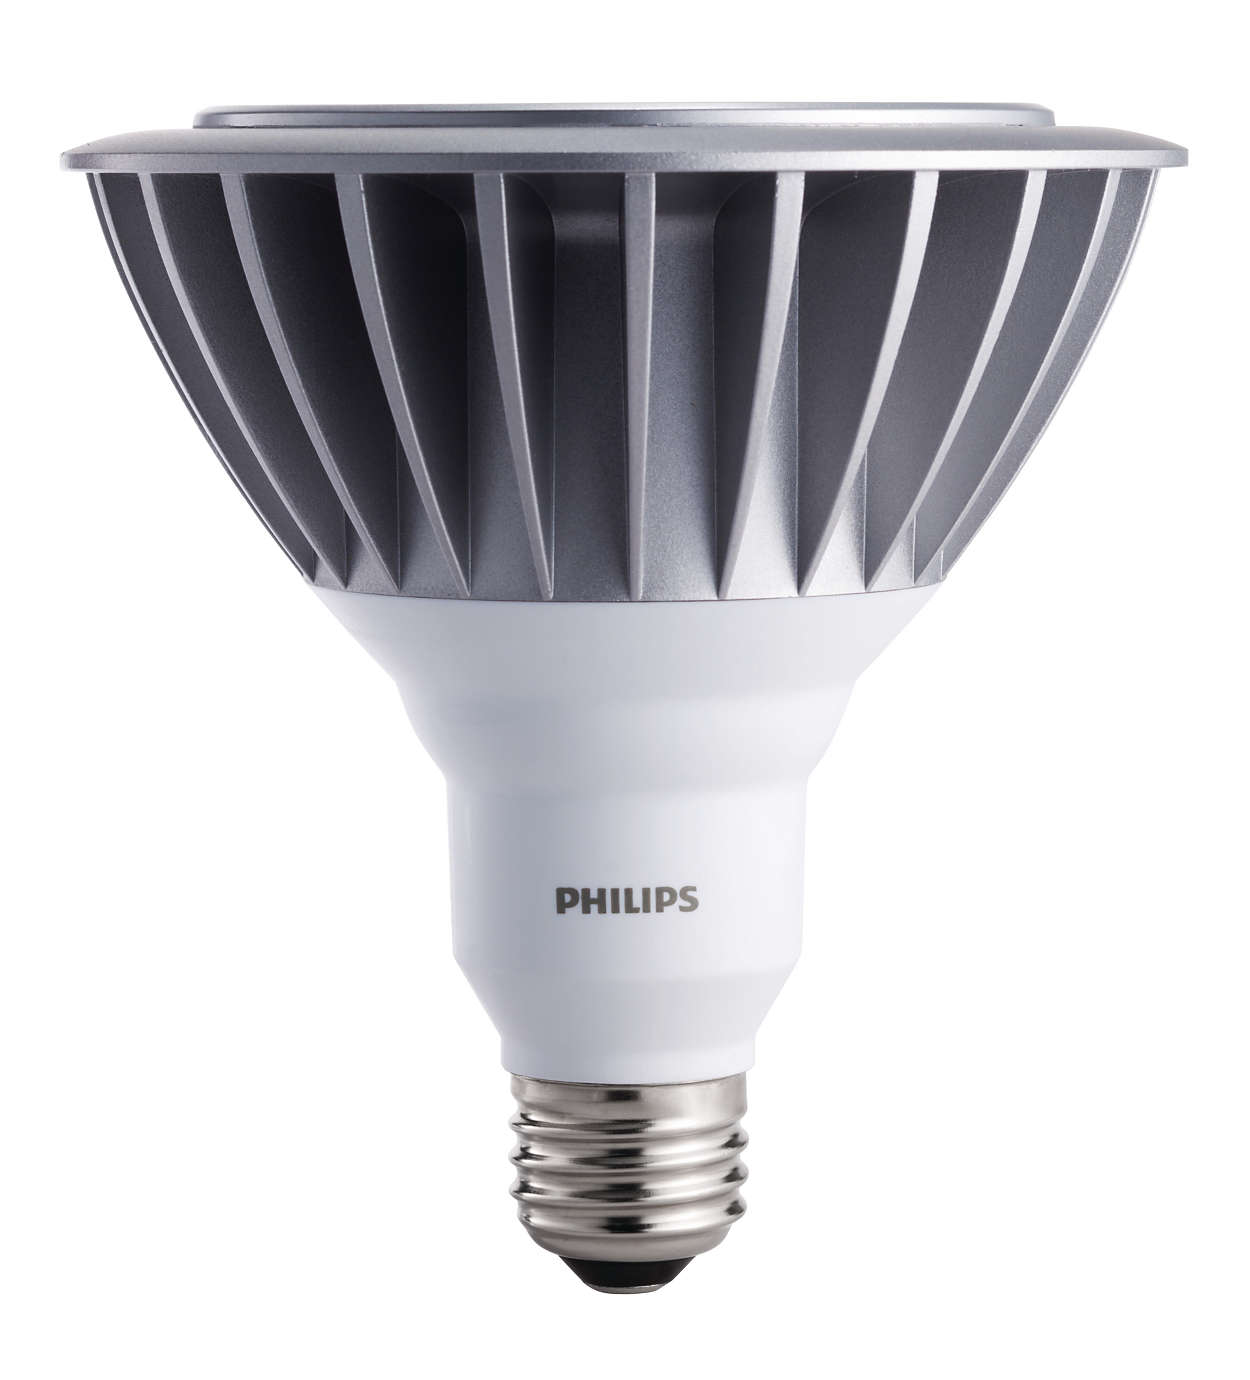 Ambientled energy saving outdoor flood light 046677418434 philips a simple way to beautify your home workwithnaturefo